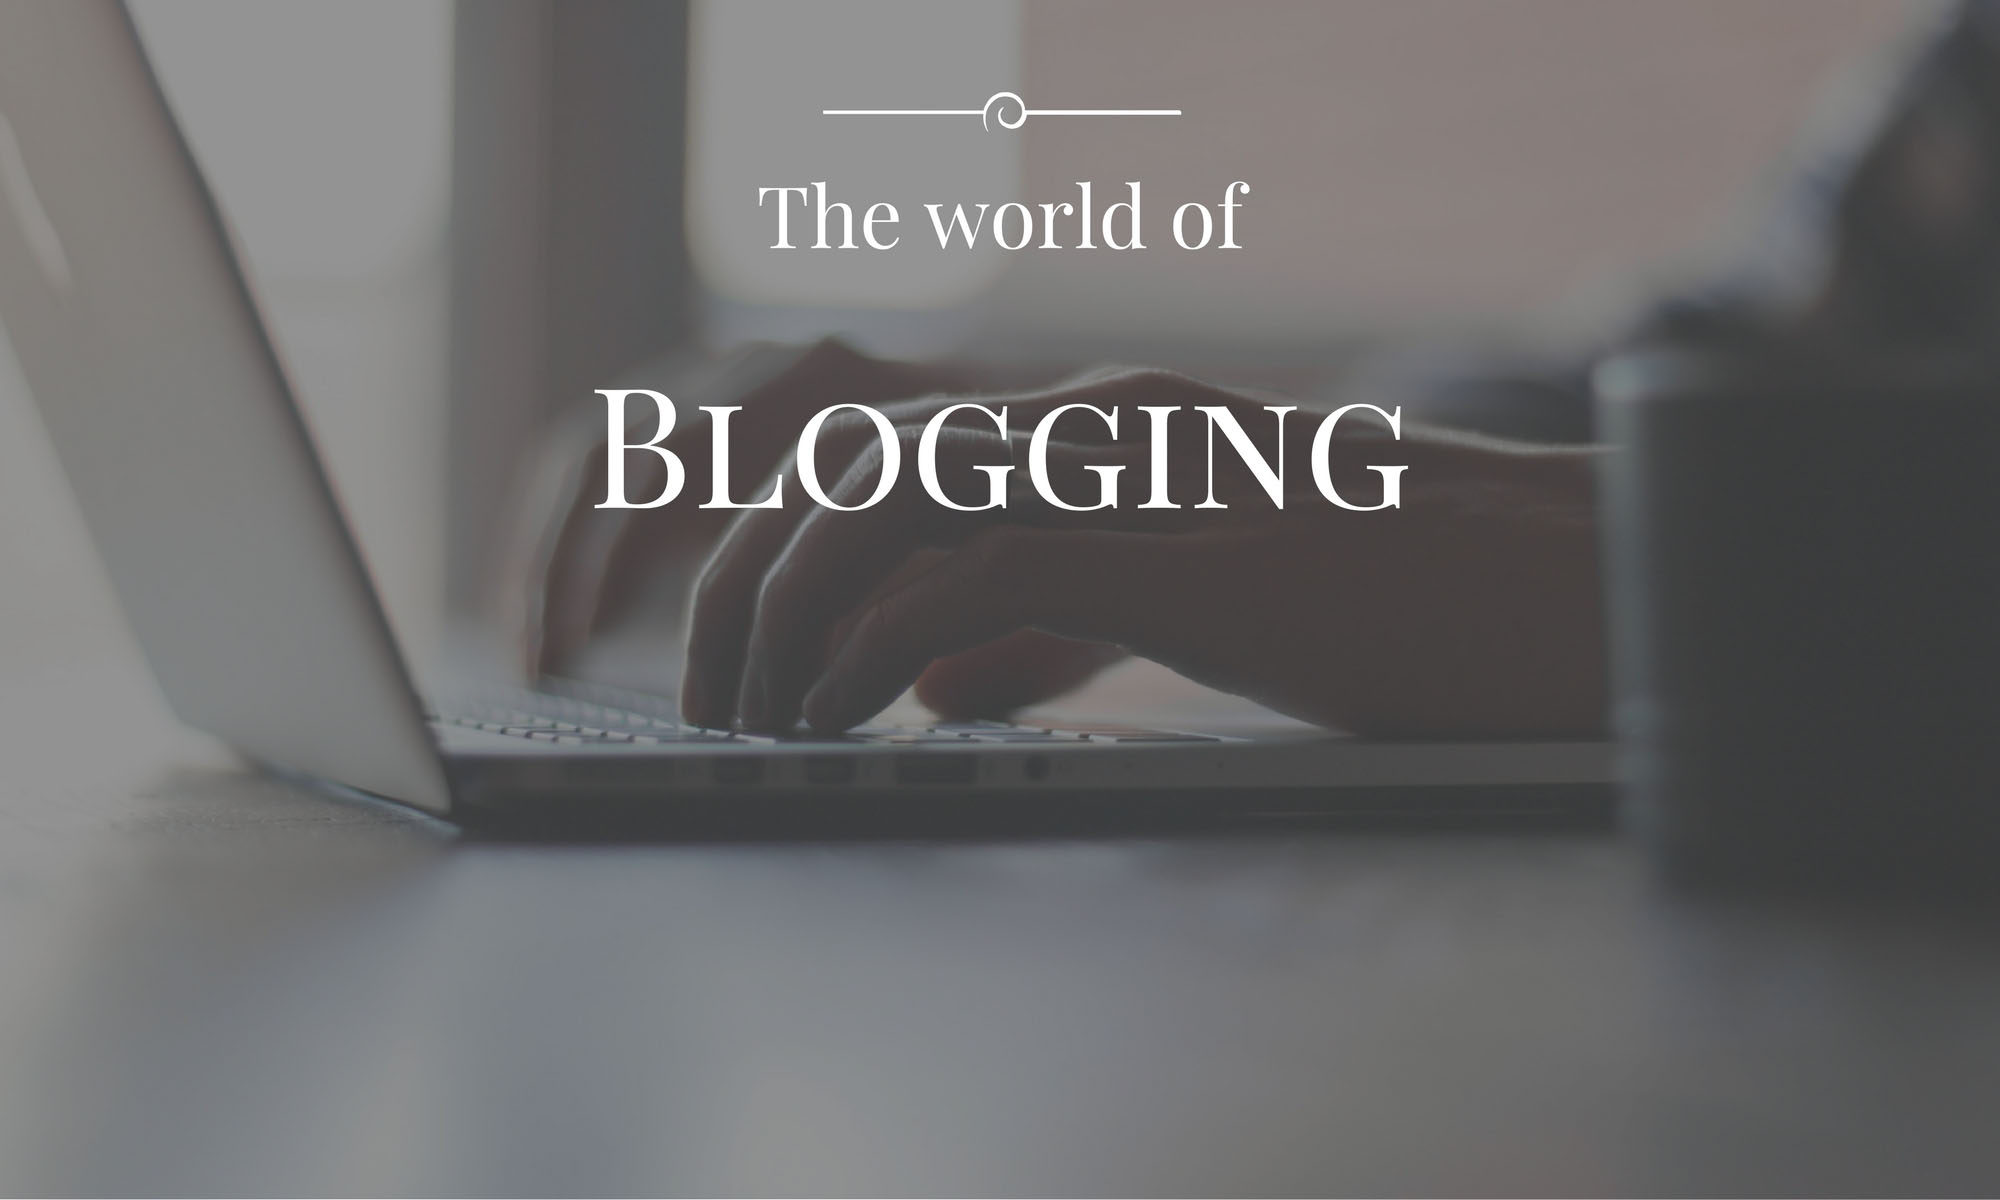 Problog - the world of blogging